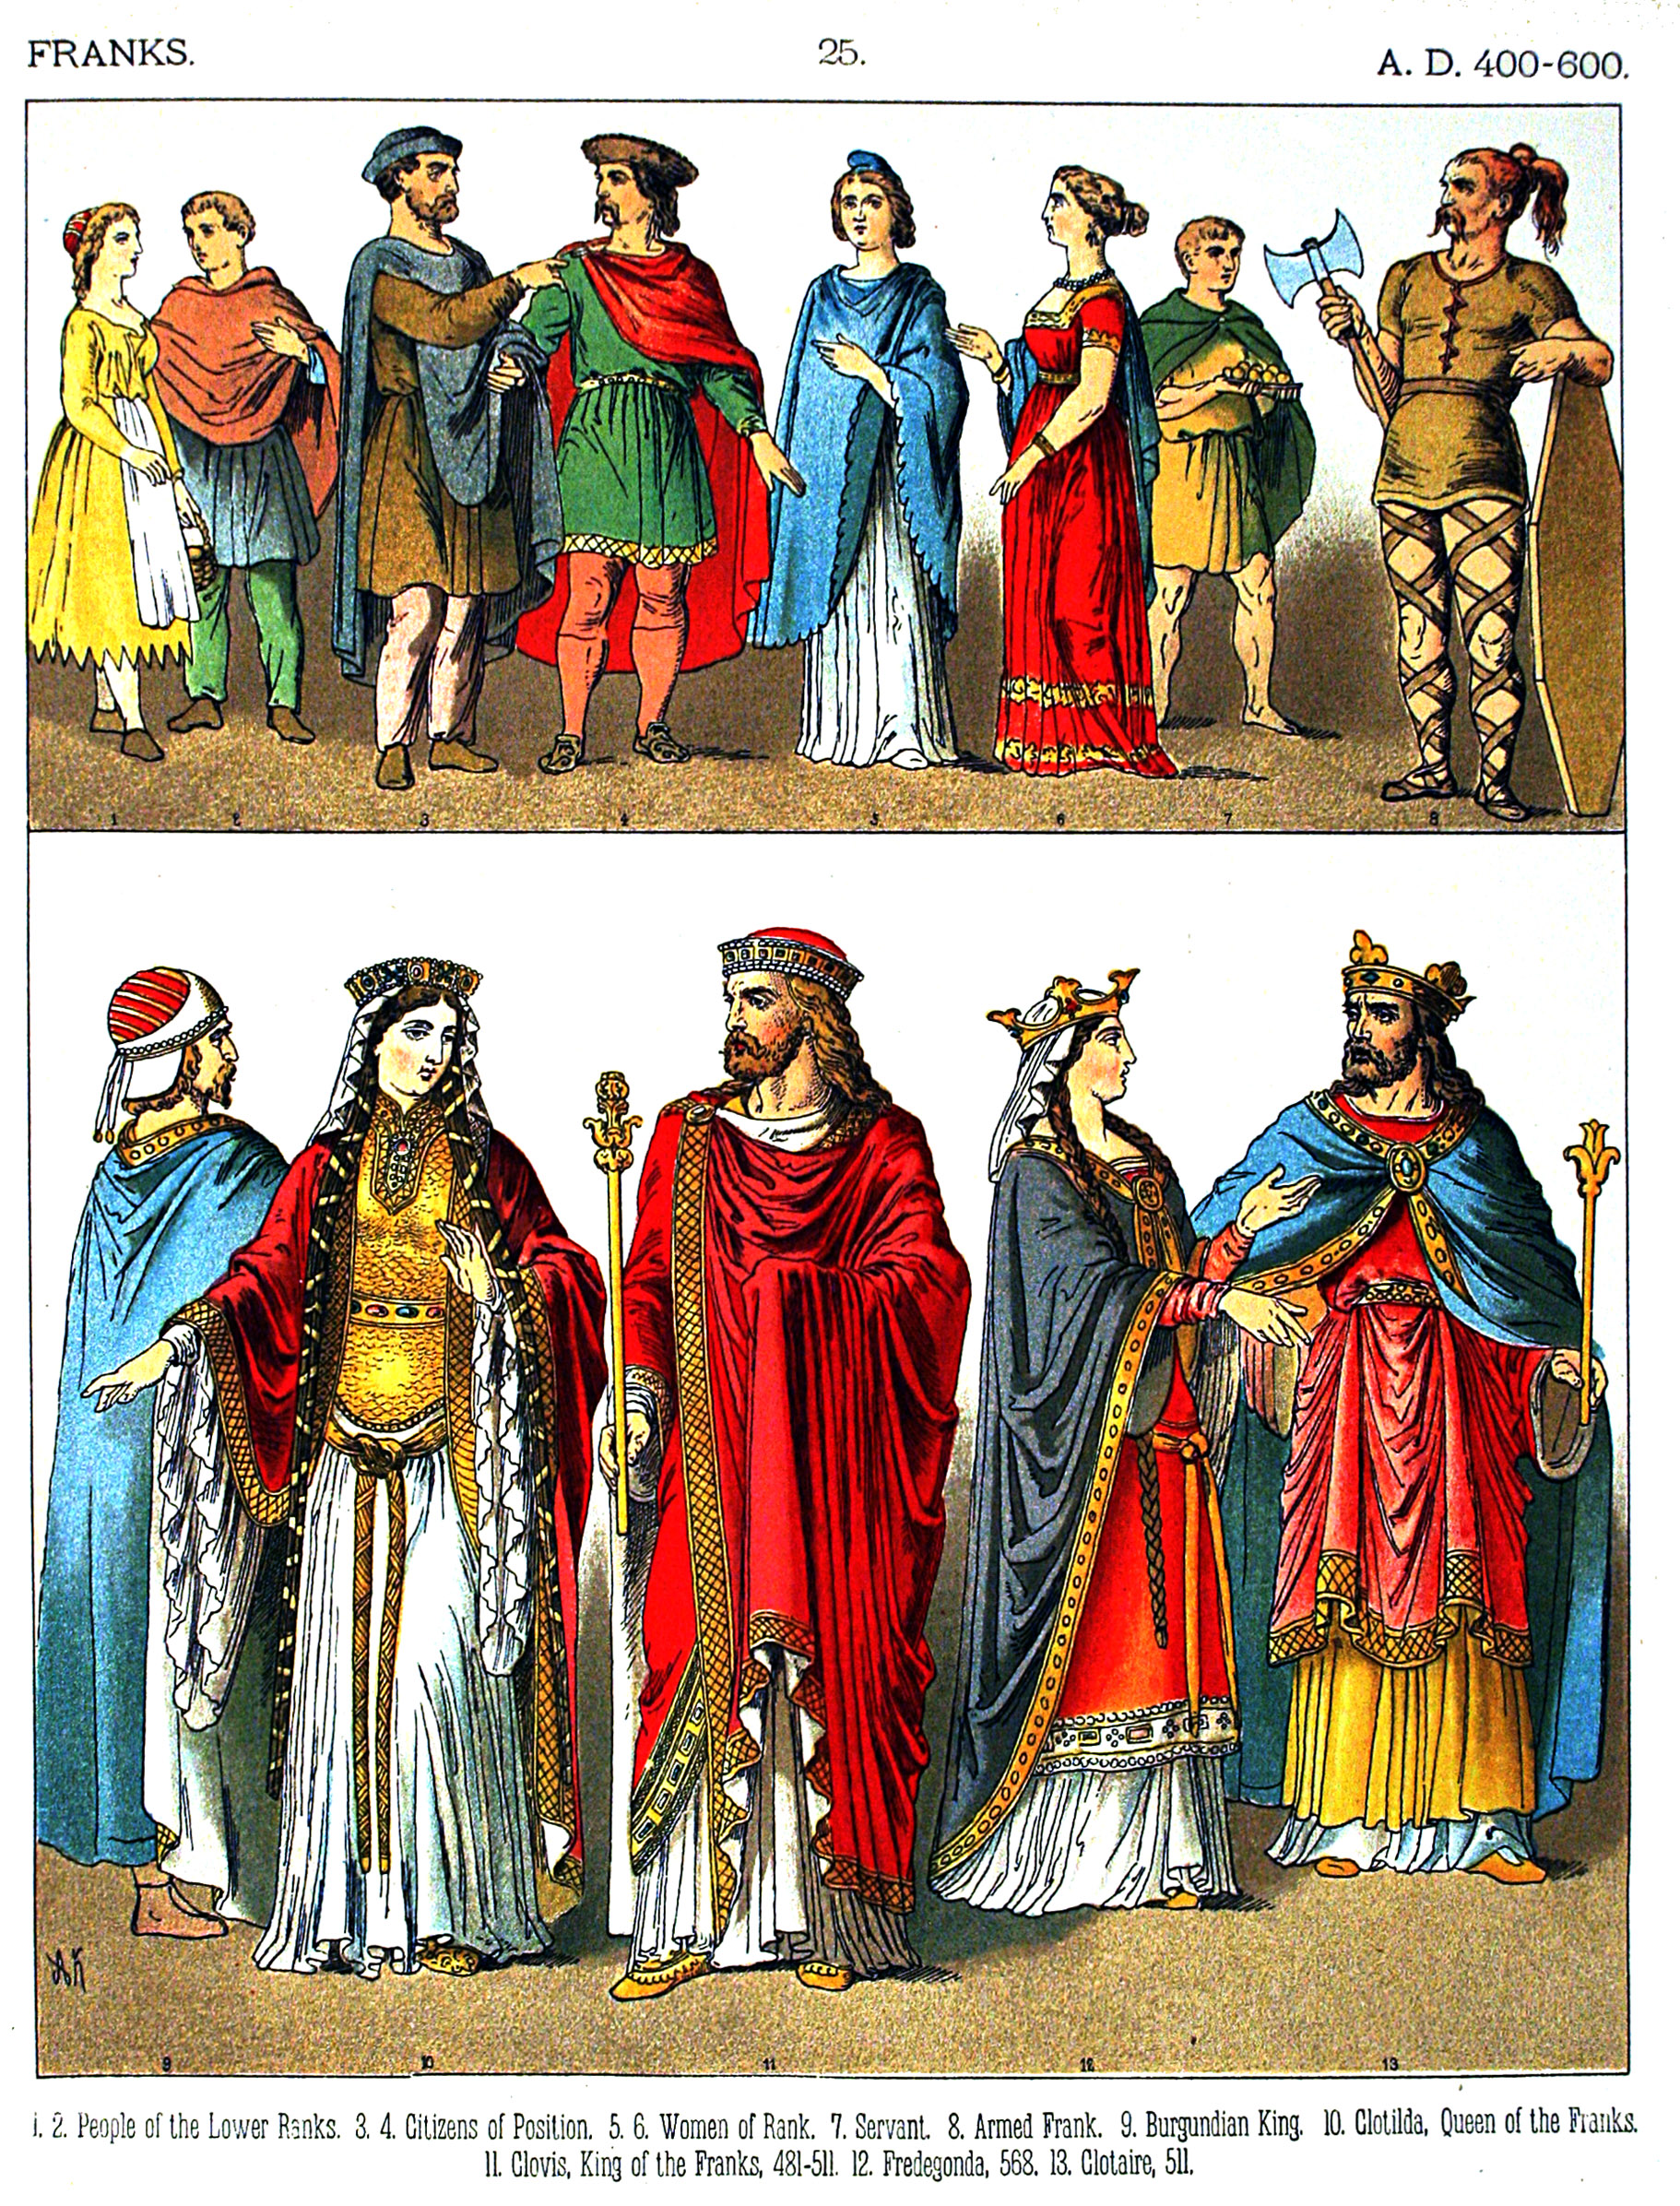 A 19th-century depiction of different Franks (AD 400-600)